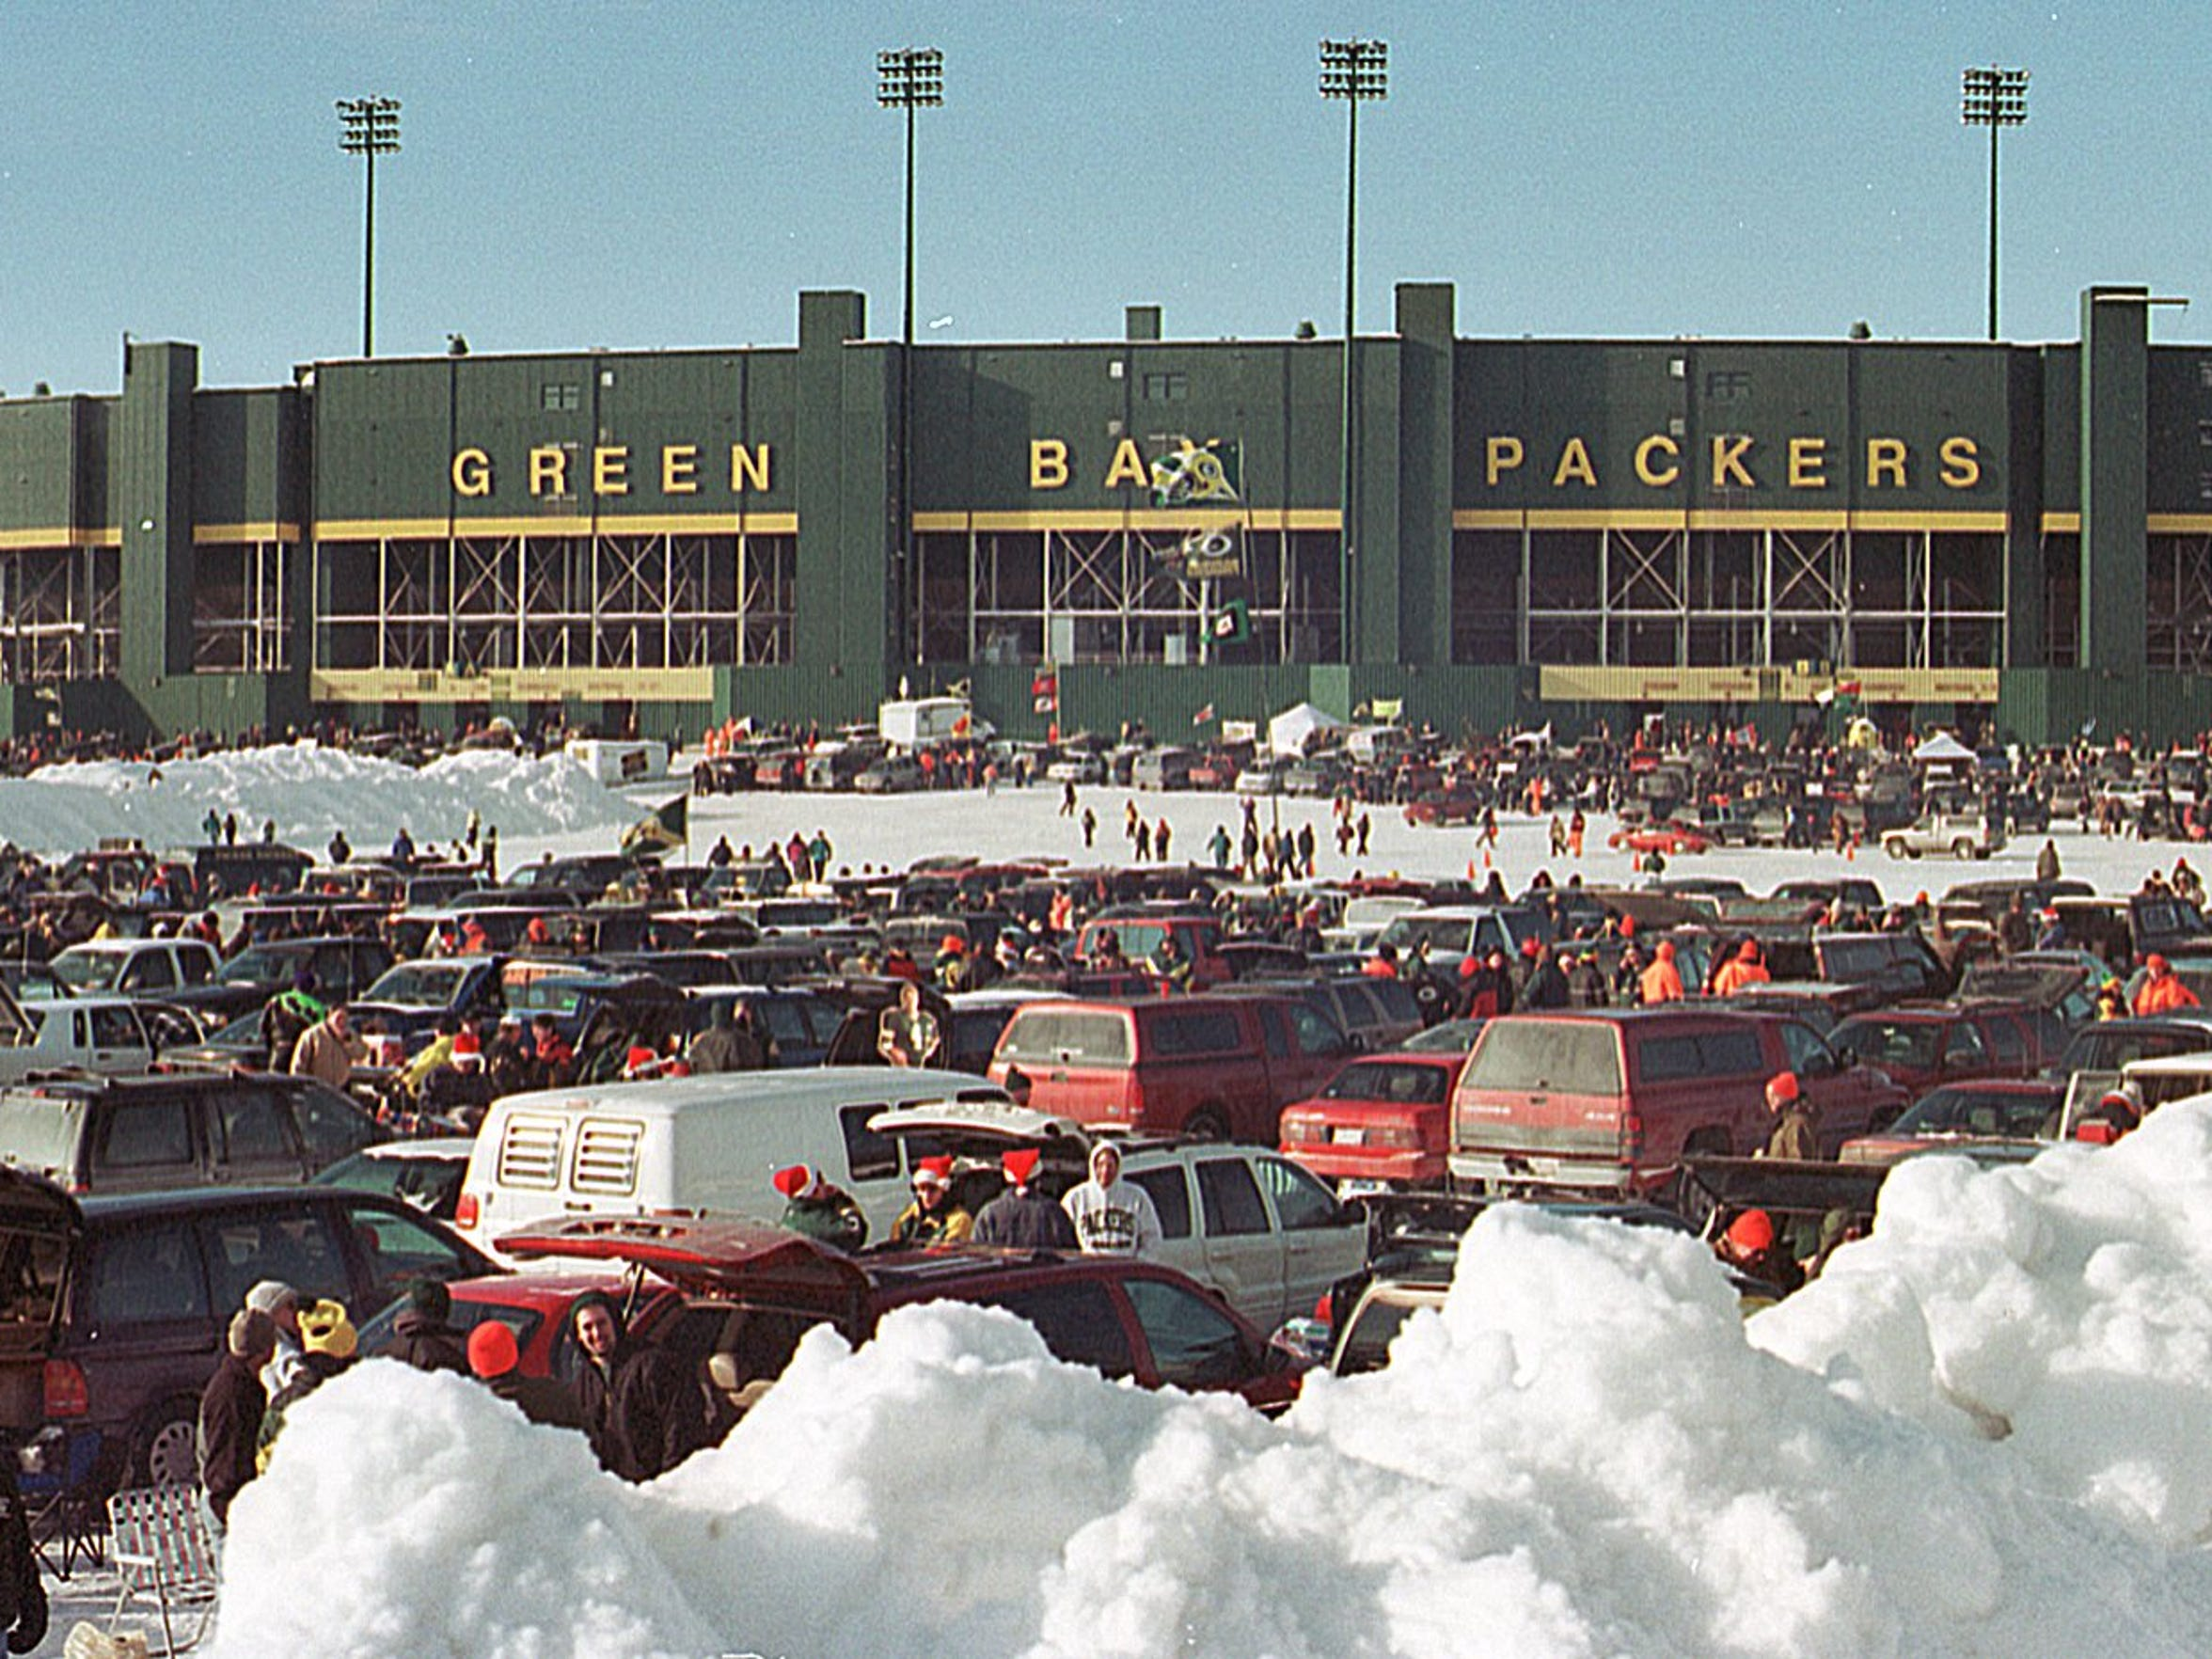 Tailgaters celebrate before the Packers take on the Tampa Bay Buccaneers on Dec. 24, 2000, the last game before Lambeau Field underwent a massive renovation.